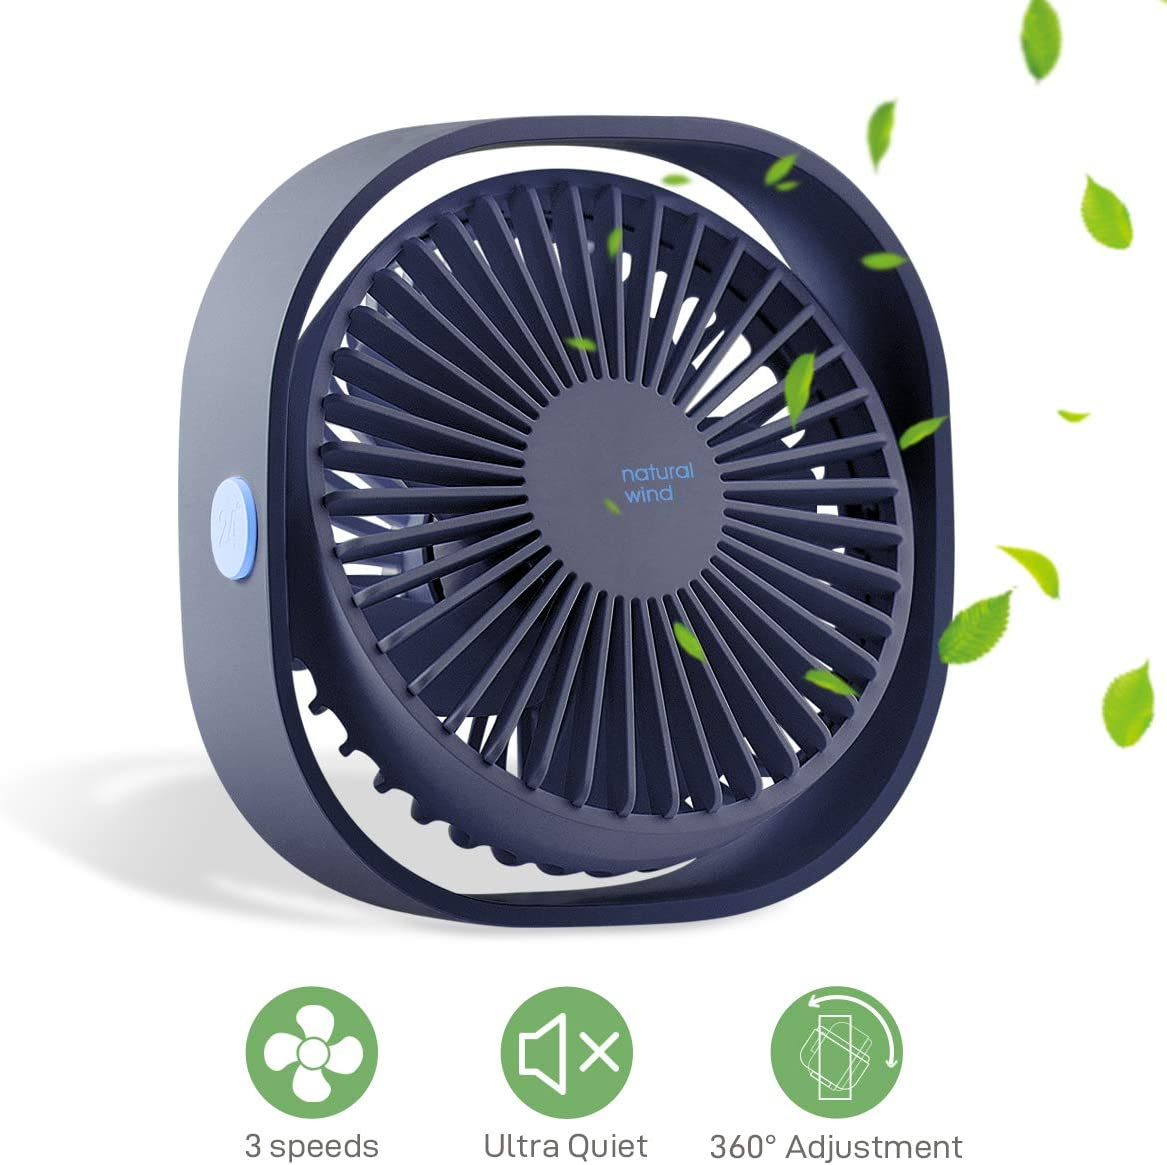 MATEPROX Mini USB Desk Fan, Snow Series Small Desktop Table Personal Fan with 3 Speed,Quiet Cooling Wind for Office Desktop Room Car Travel Blue